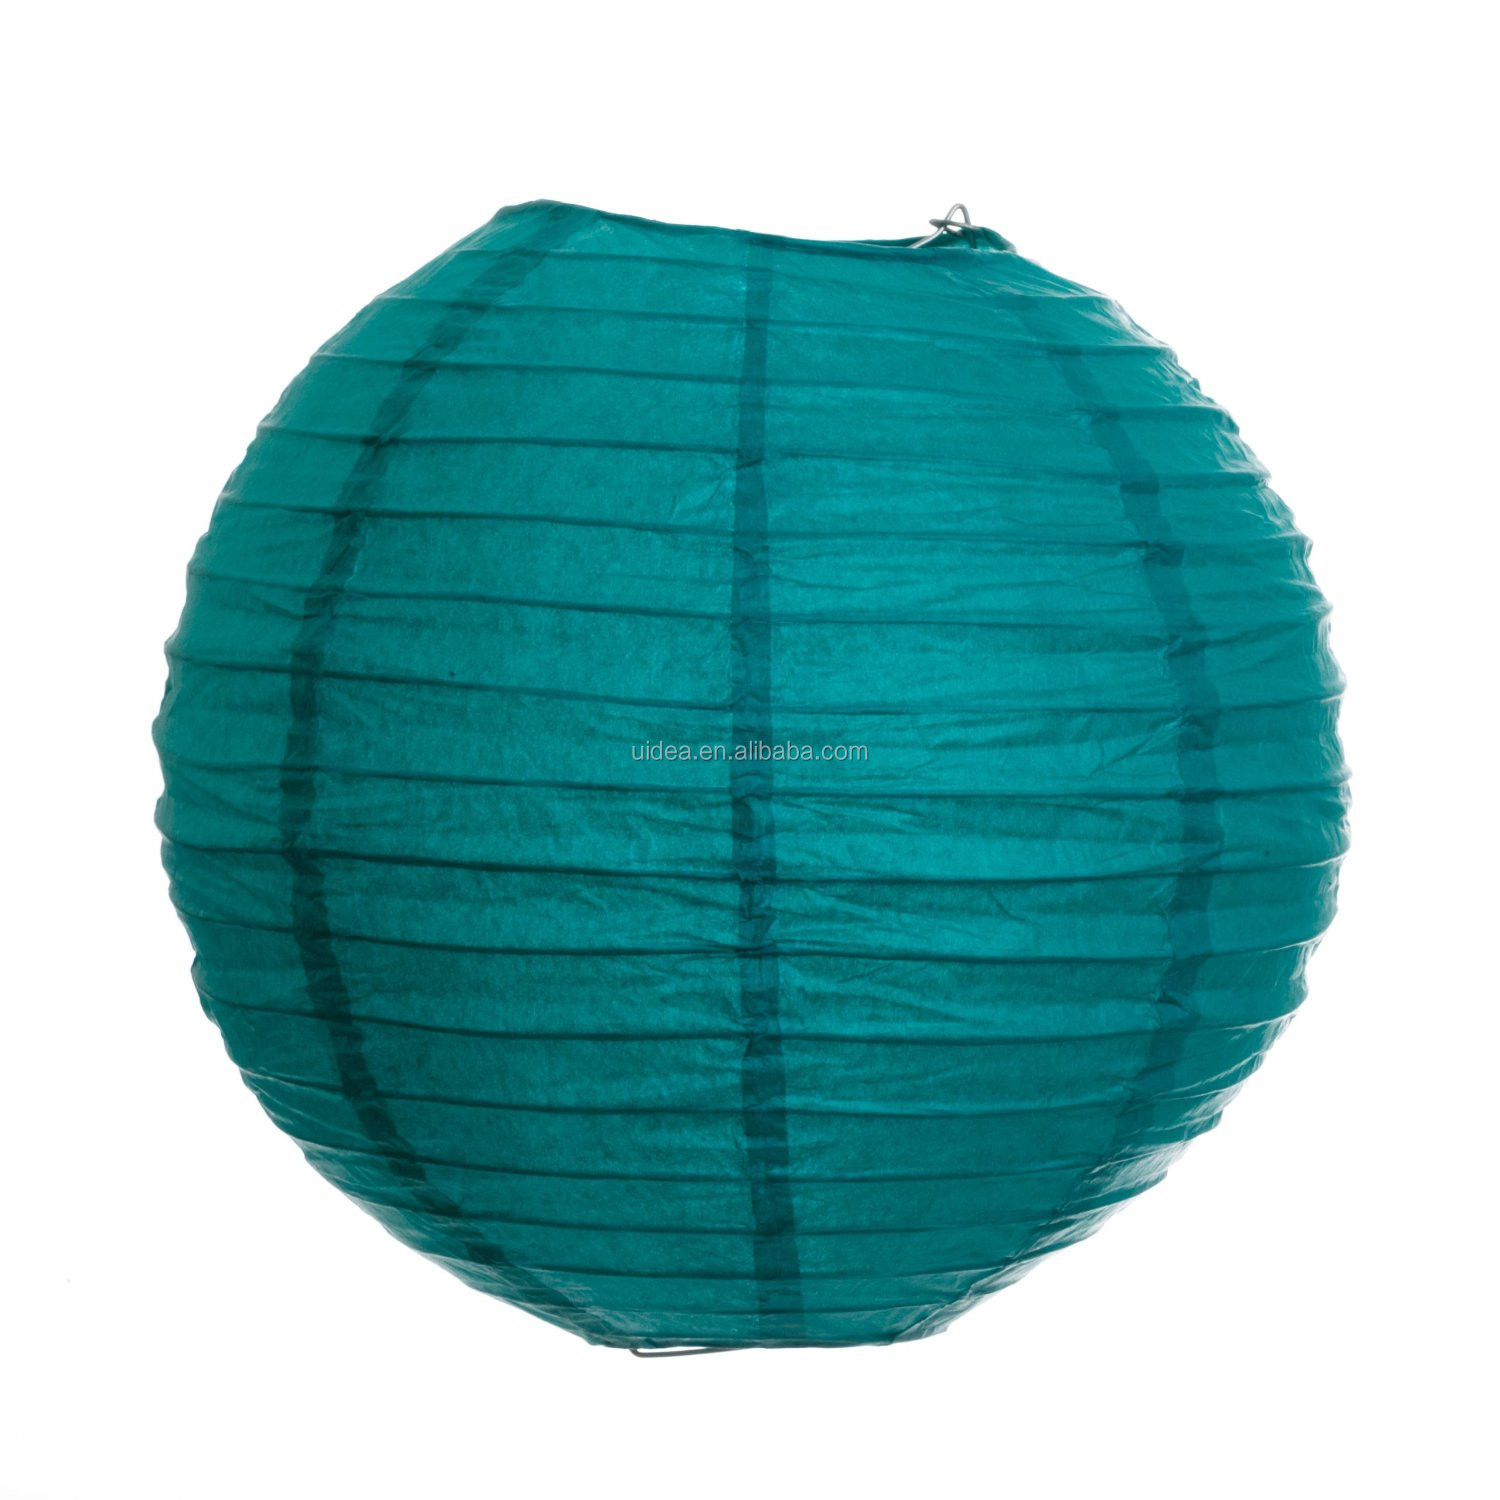 Round Chinese Hanging Paper Lanterns for Wedding Decoration